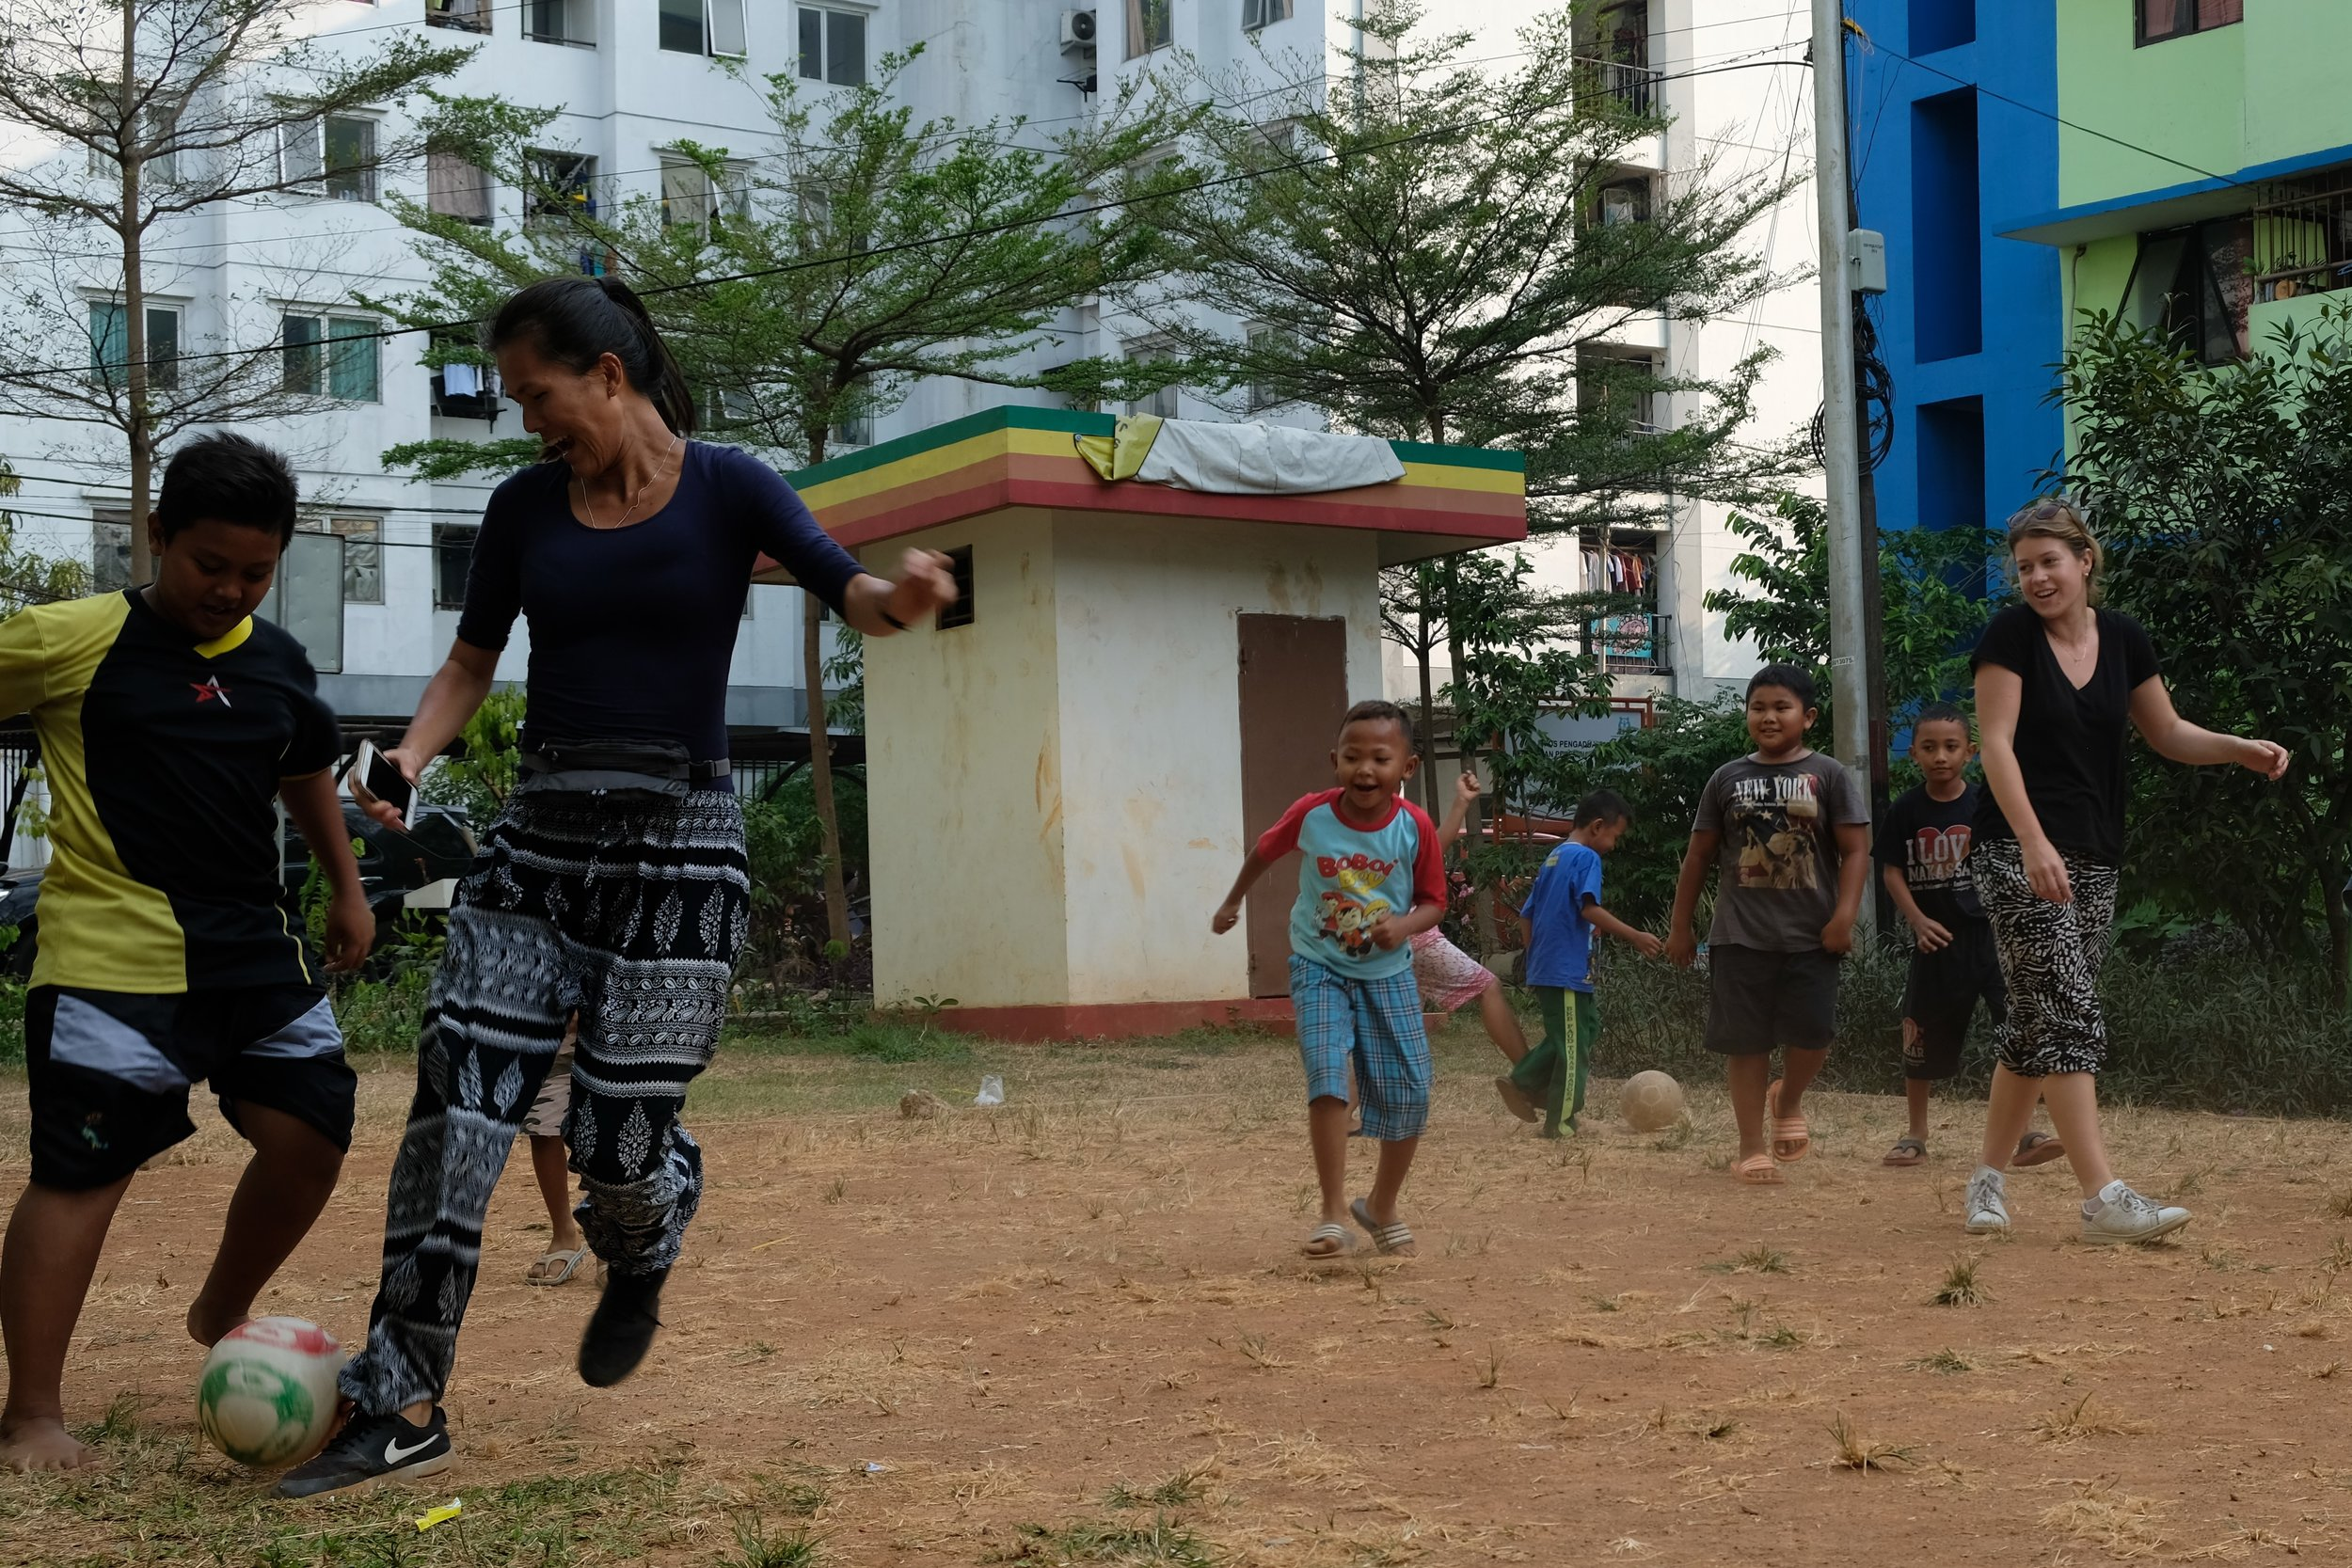 Kids know how to brighten any situation, and how to turn any area into a soccer field.